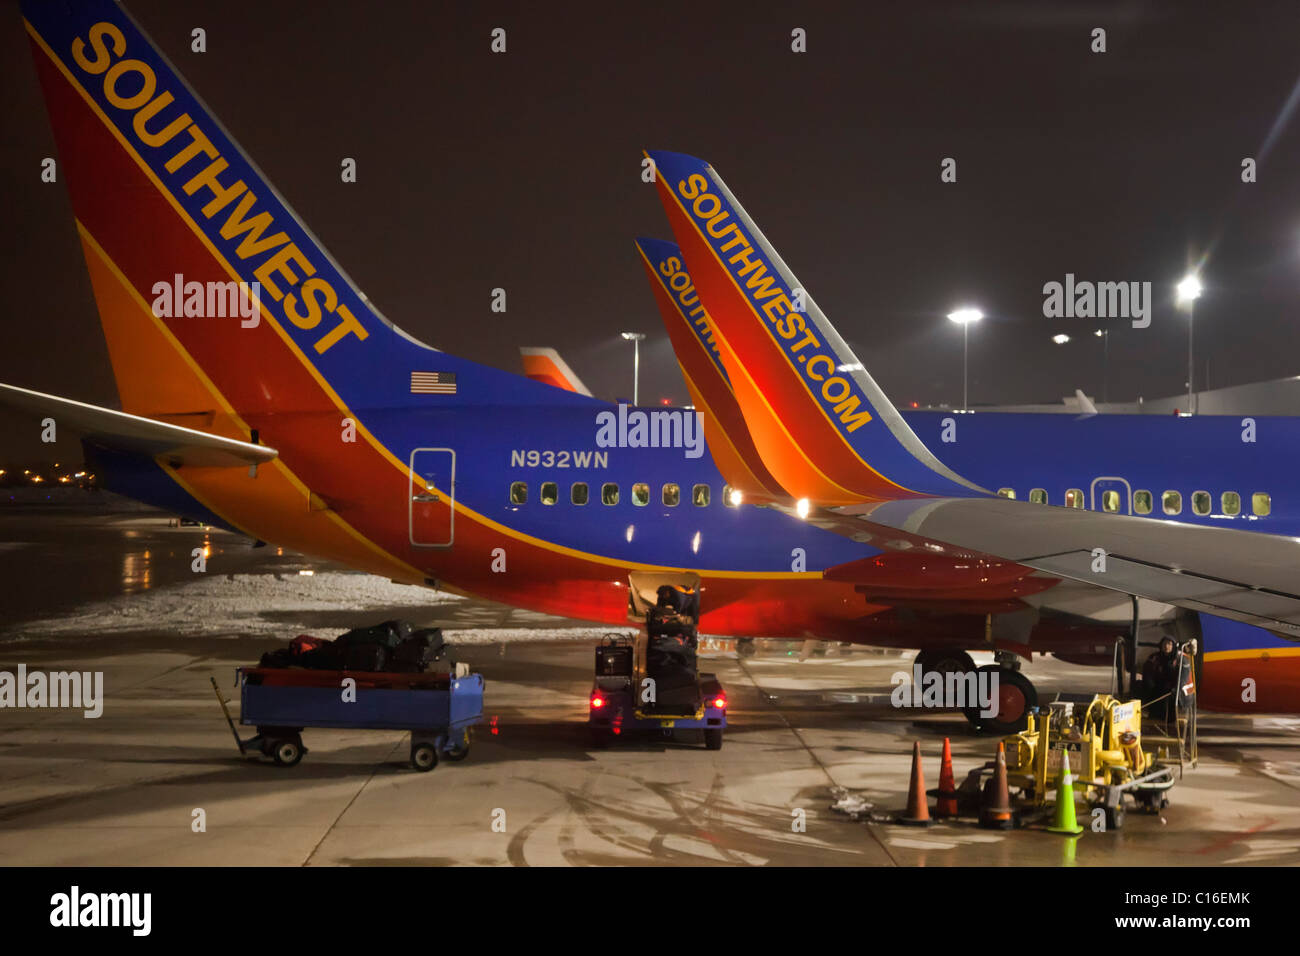 United Airlines Free Baggage Detroit Michigan Southwest Airlines Planes At Night At